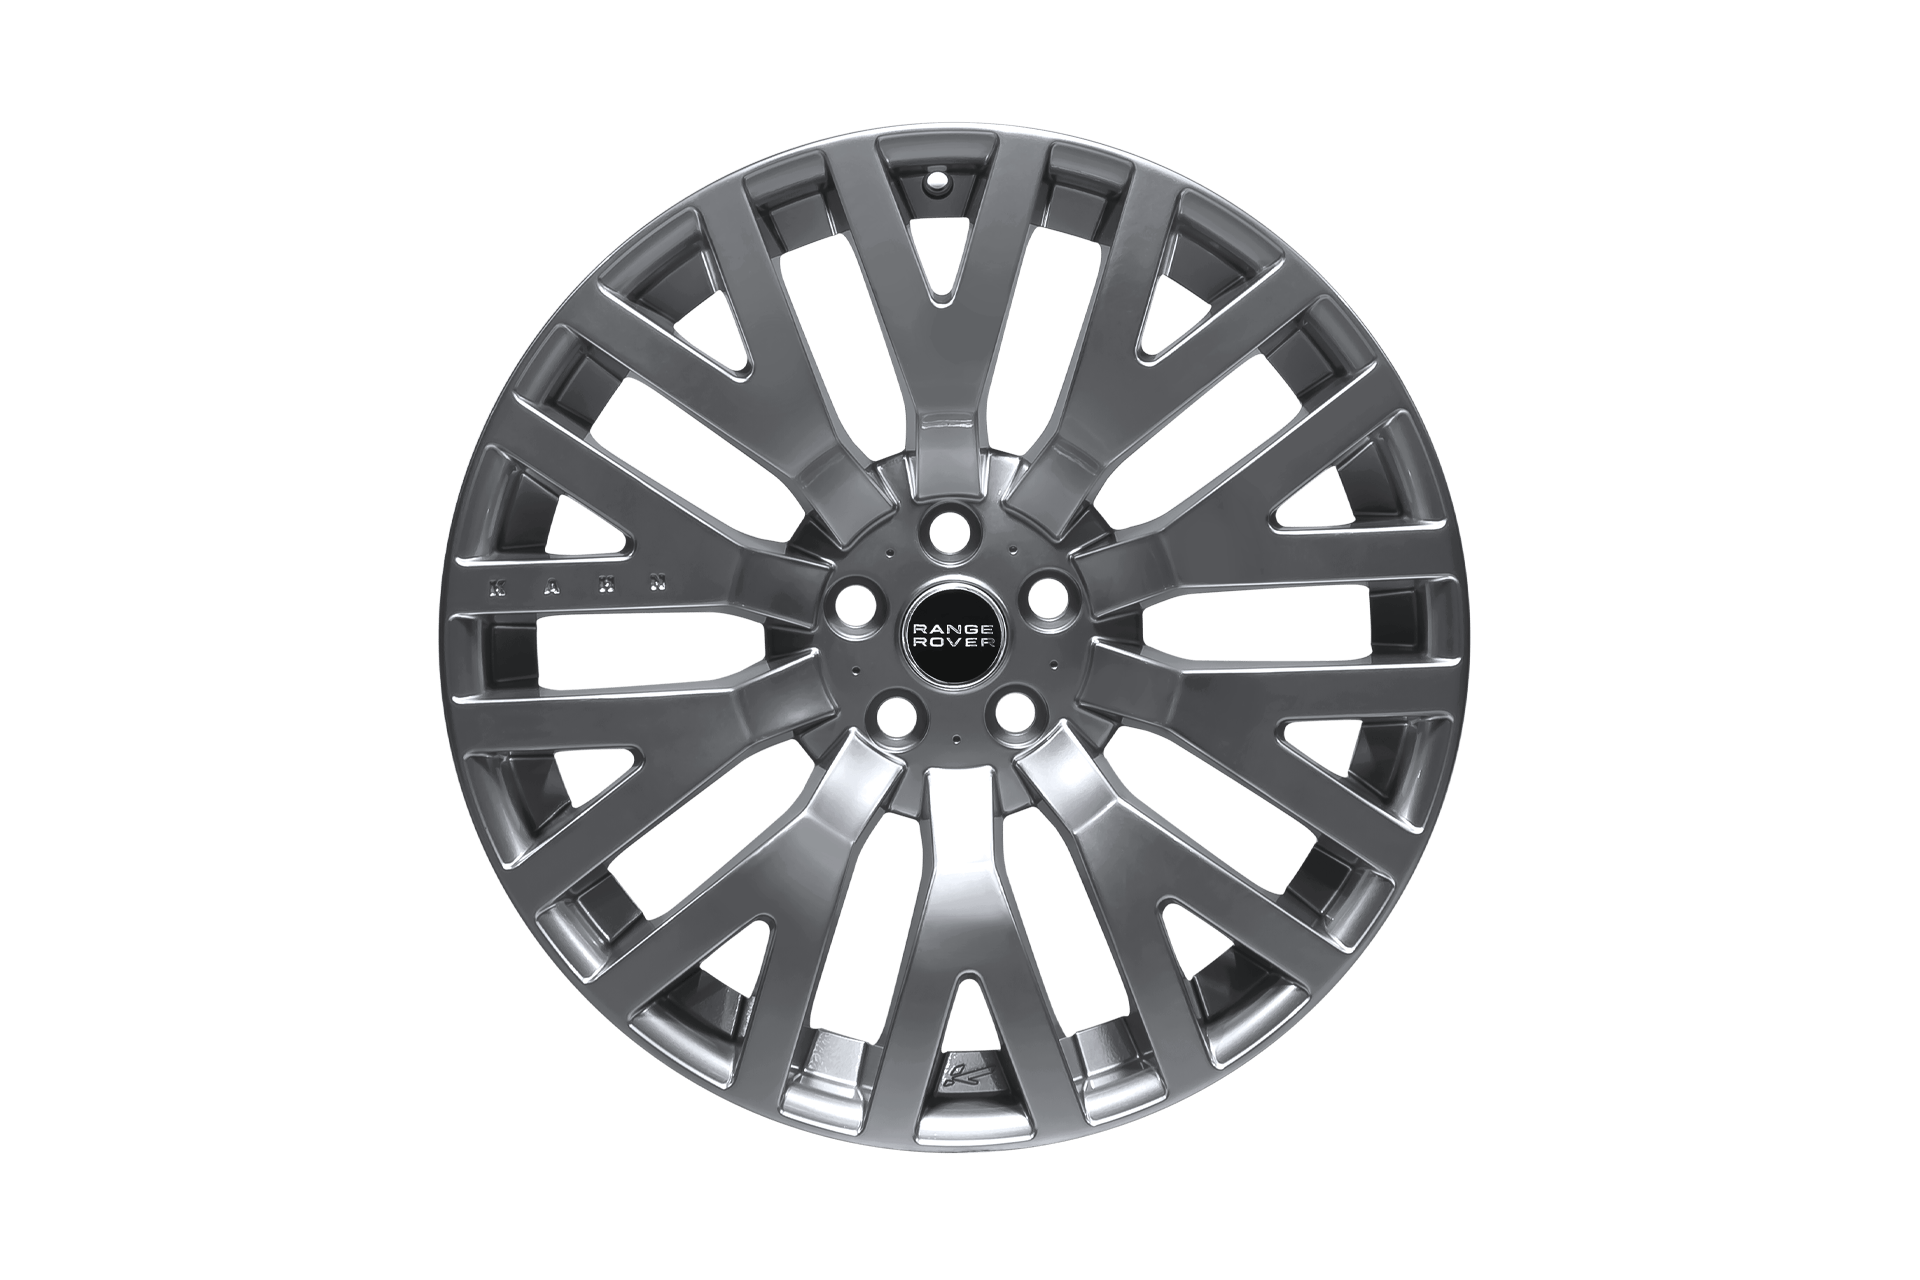 Land Rover Discovery (2017-Present) Rs Light Alloy Wheels by Kahn - Image 3206